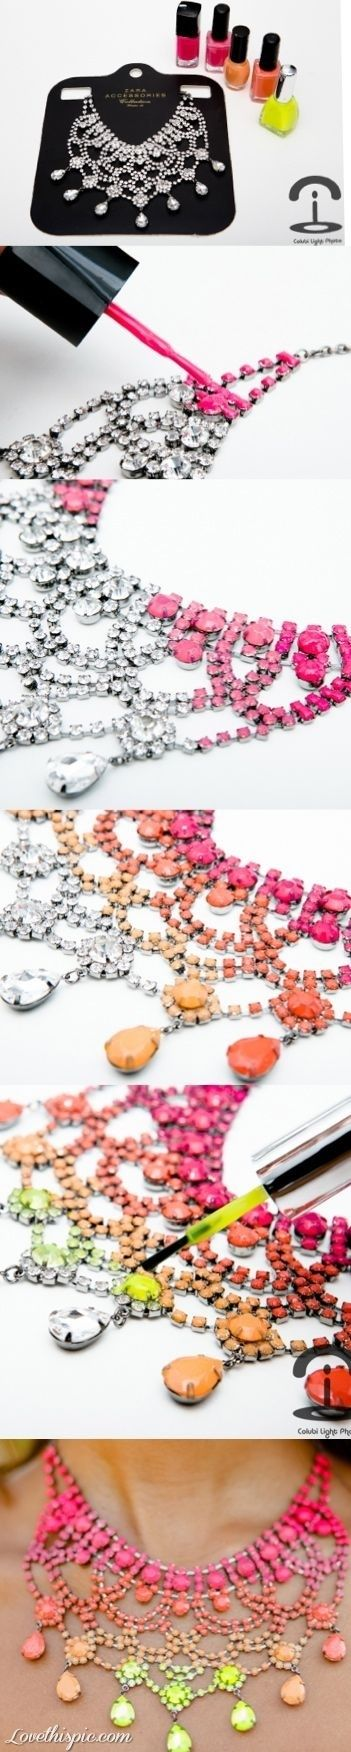 DIY Colored Necklace. Add your favorite nail polish color to an old/or new necklace to give it a new look!